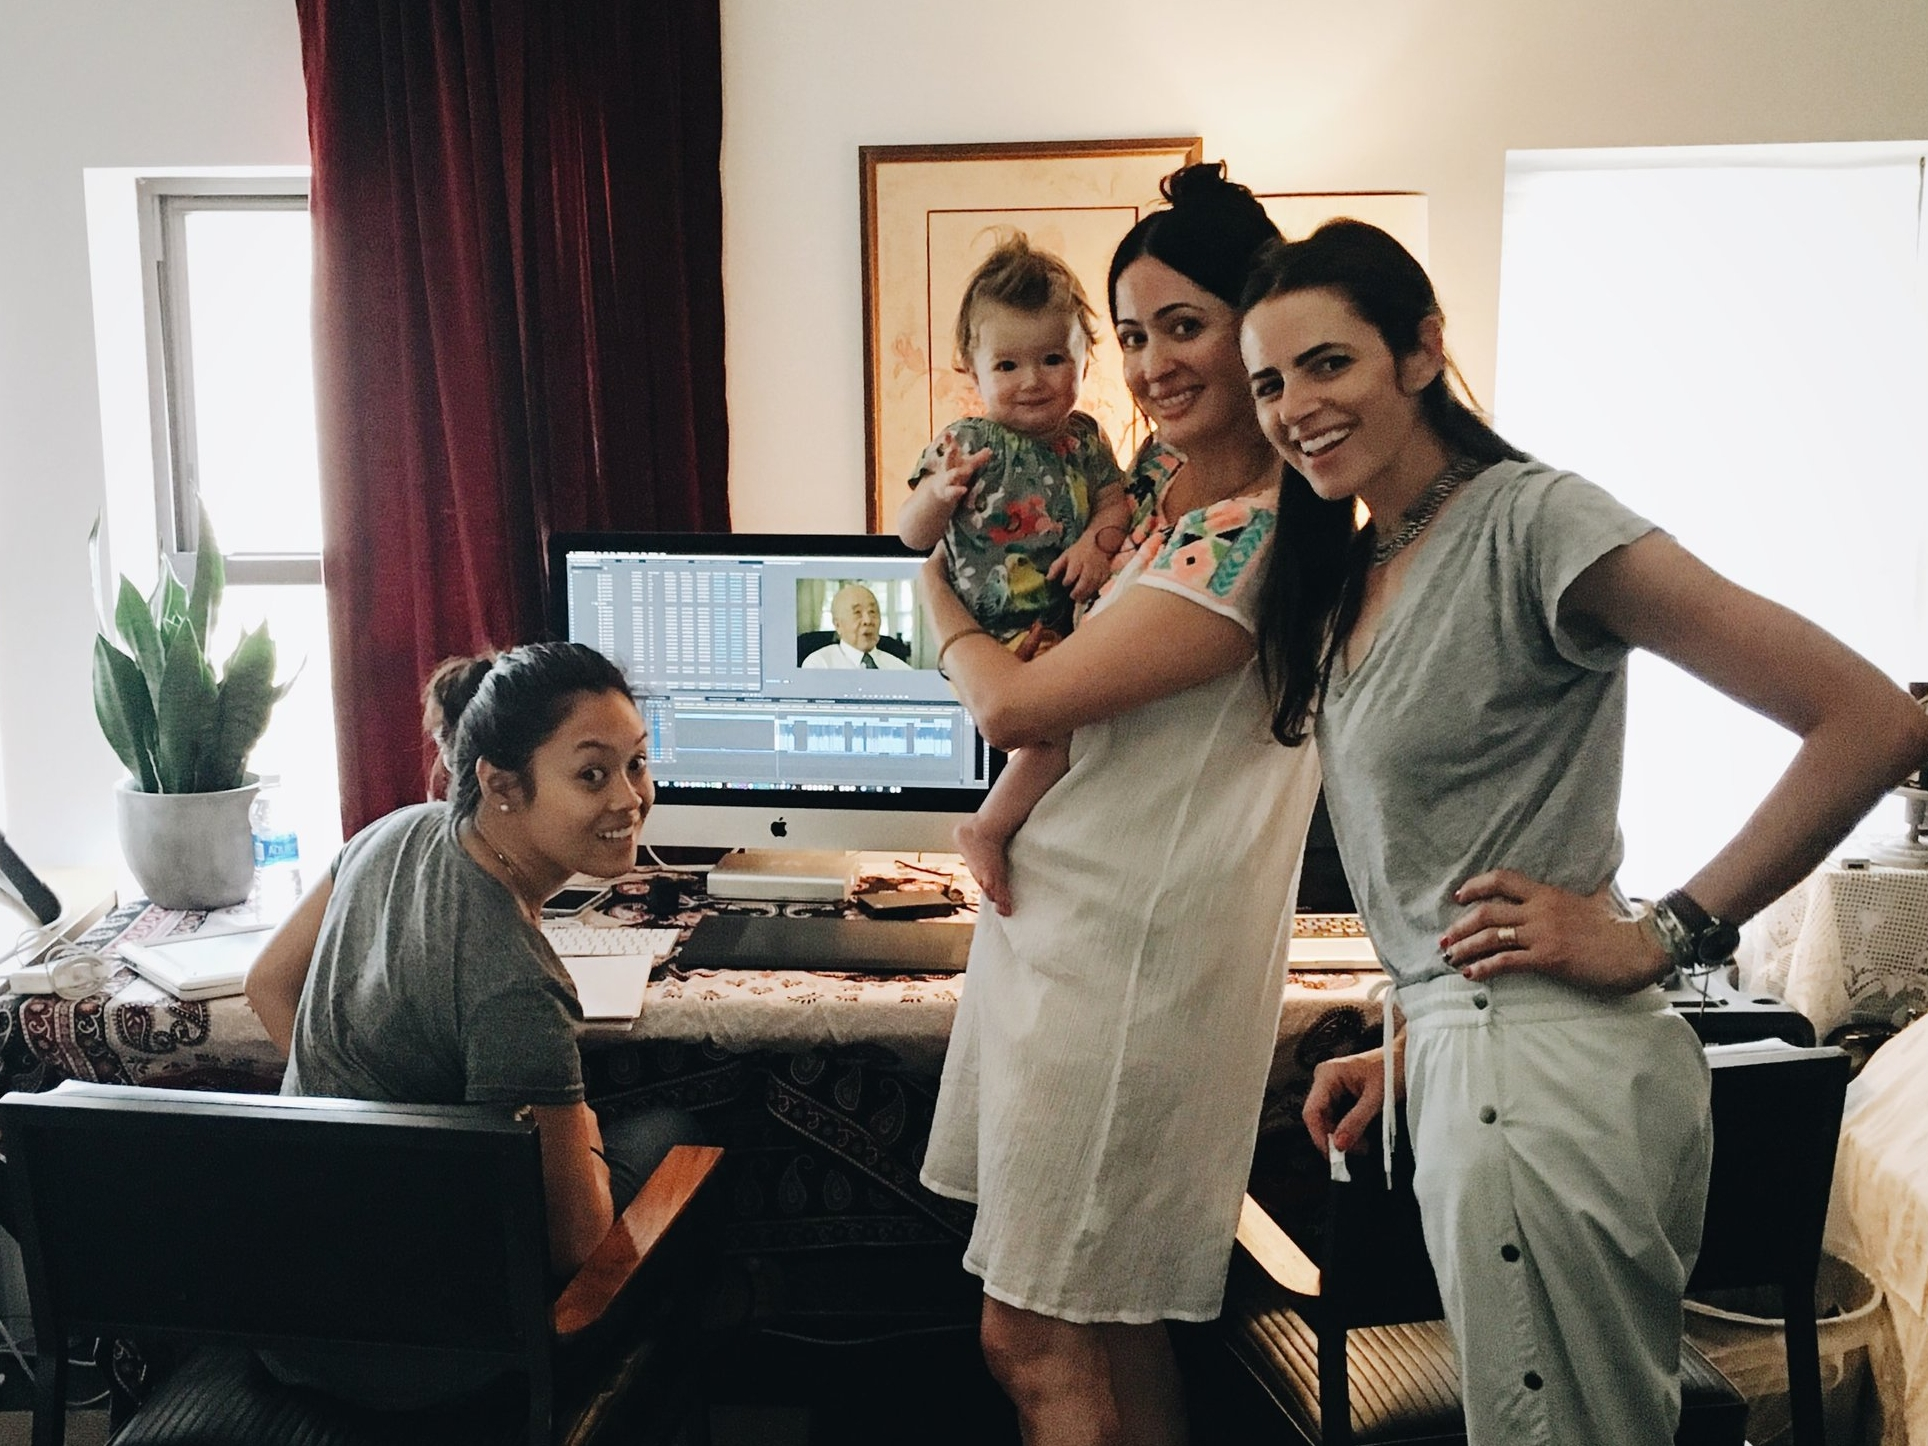 Part of the Tiger team. Assistant editor, editor, producer, and executive producer (the baby).